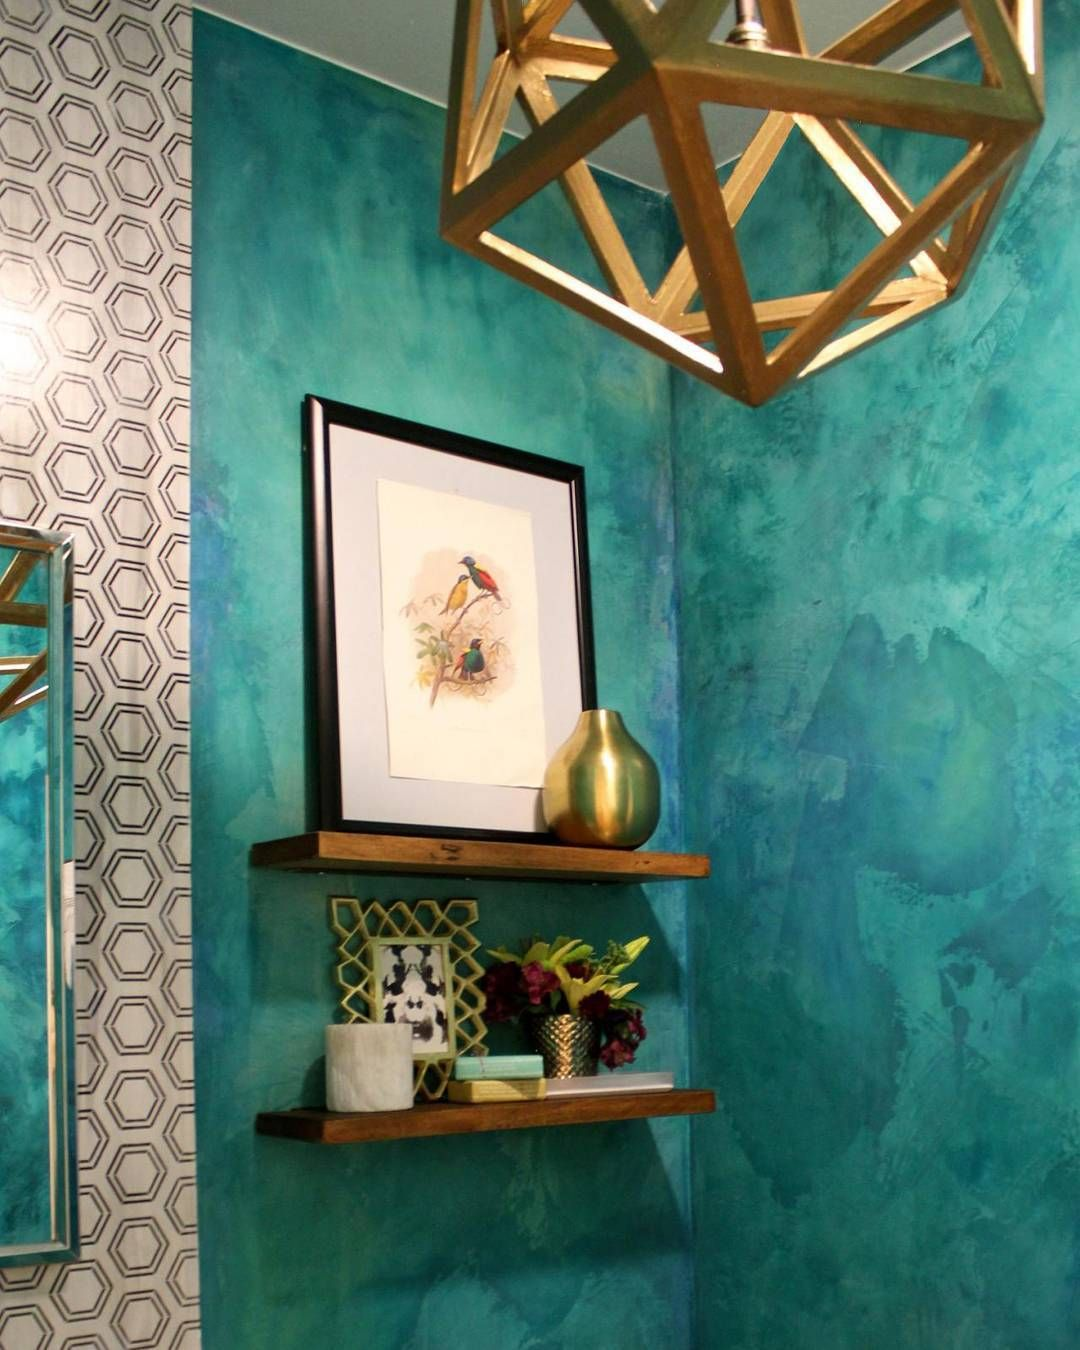 Using Bold Colors In The Bathroom: Teal Powder Room. Love A Bold Color In A Small Bath. -- #teal #powderroom #bathdesign